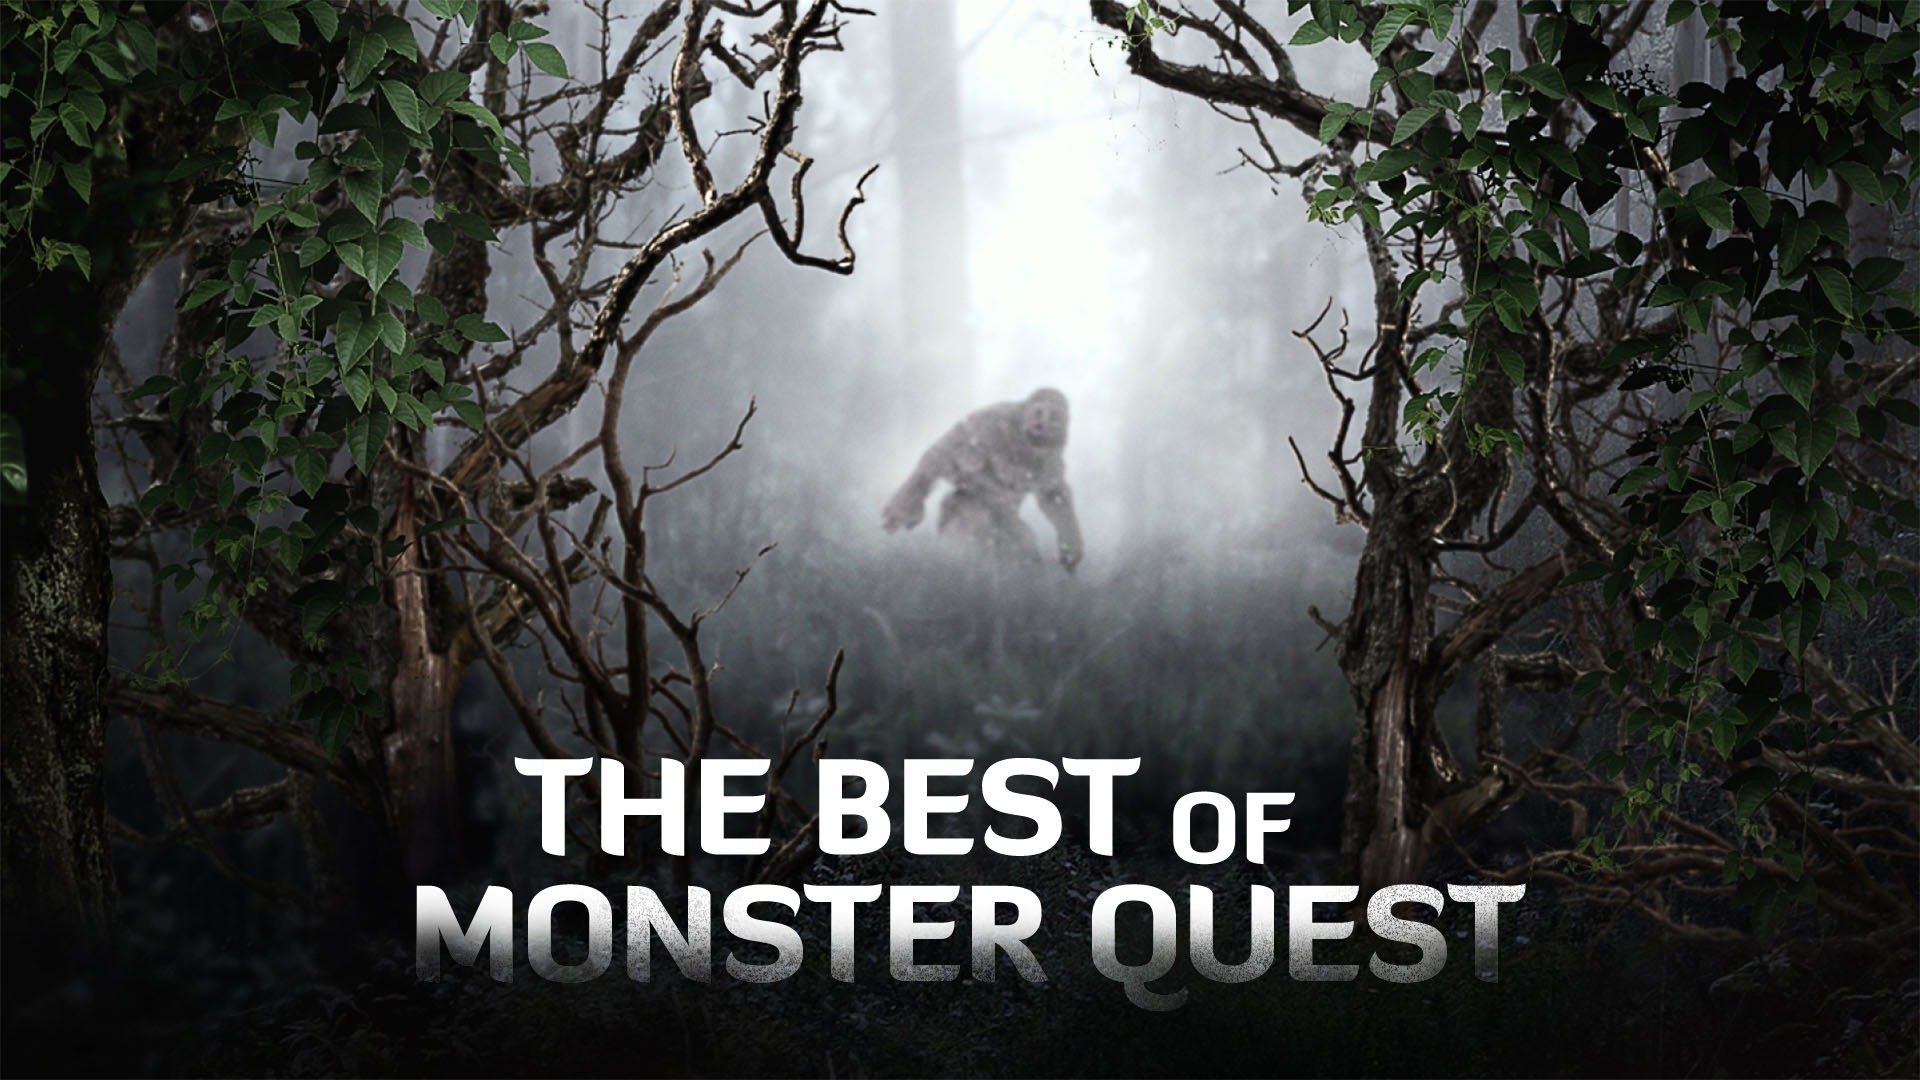 The Best of Monster Quest